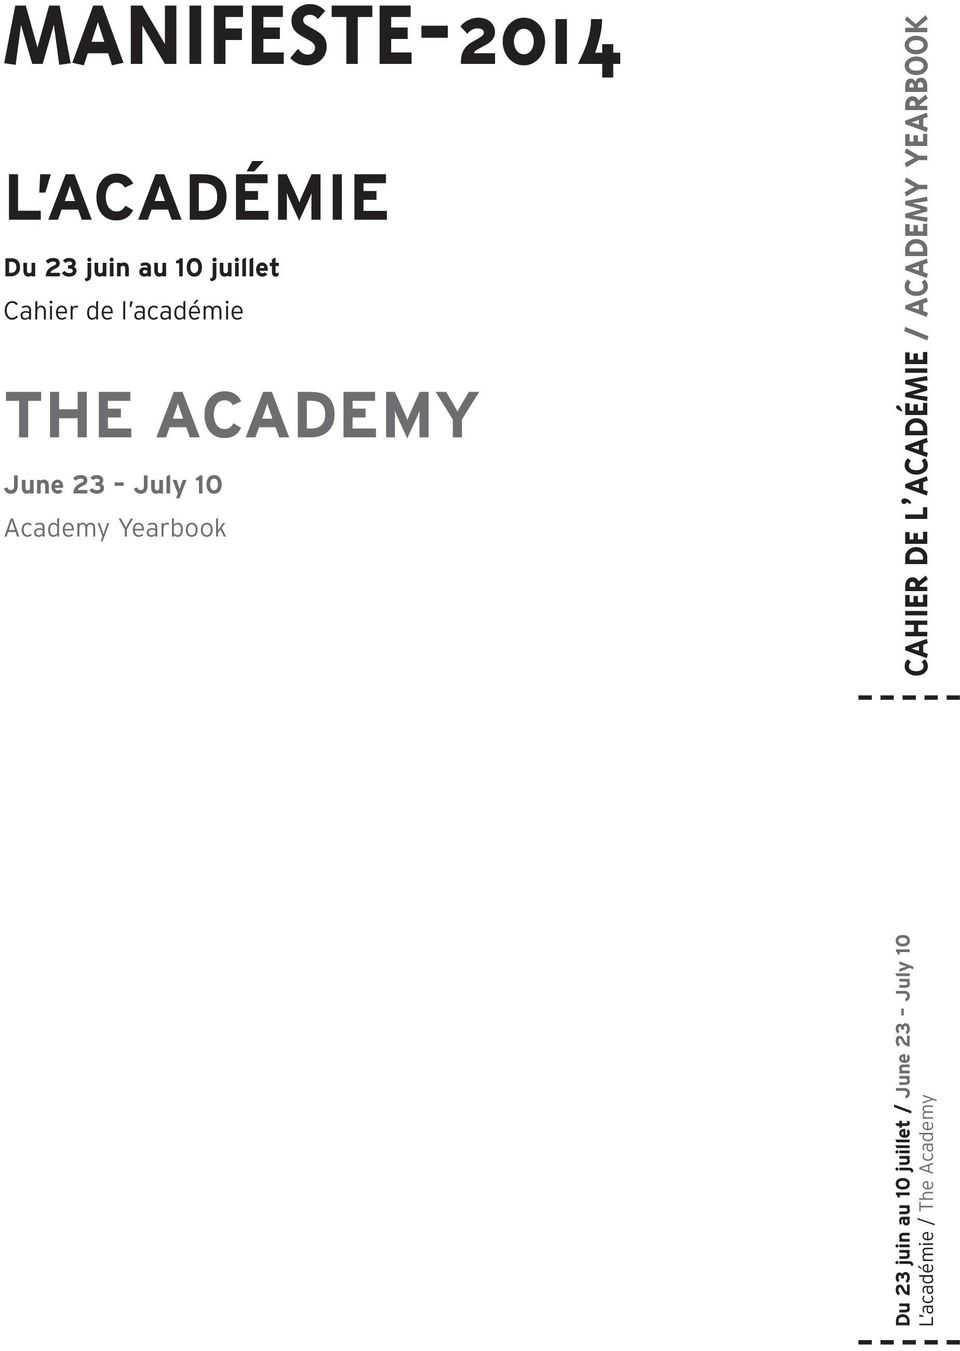 Academy Yearbook Du 23 juin au 10 juillet / June 23